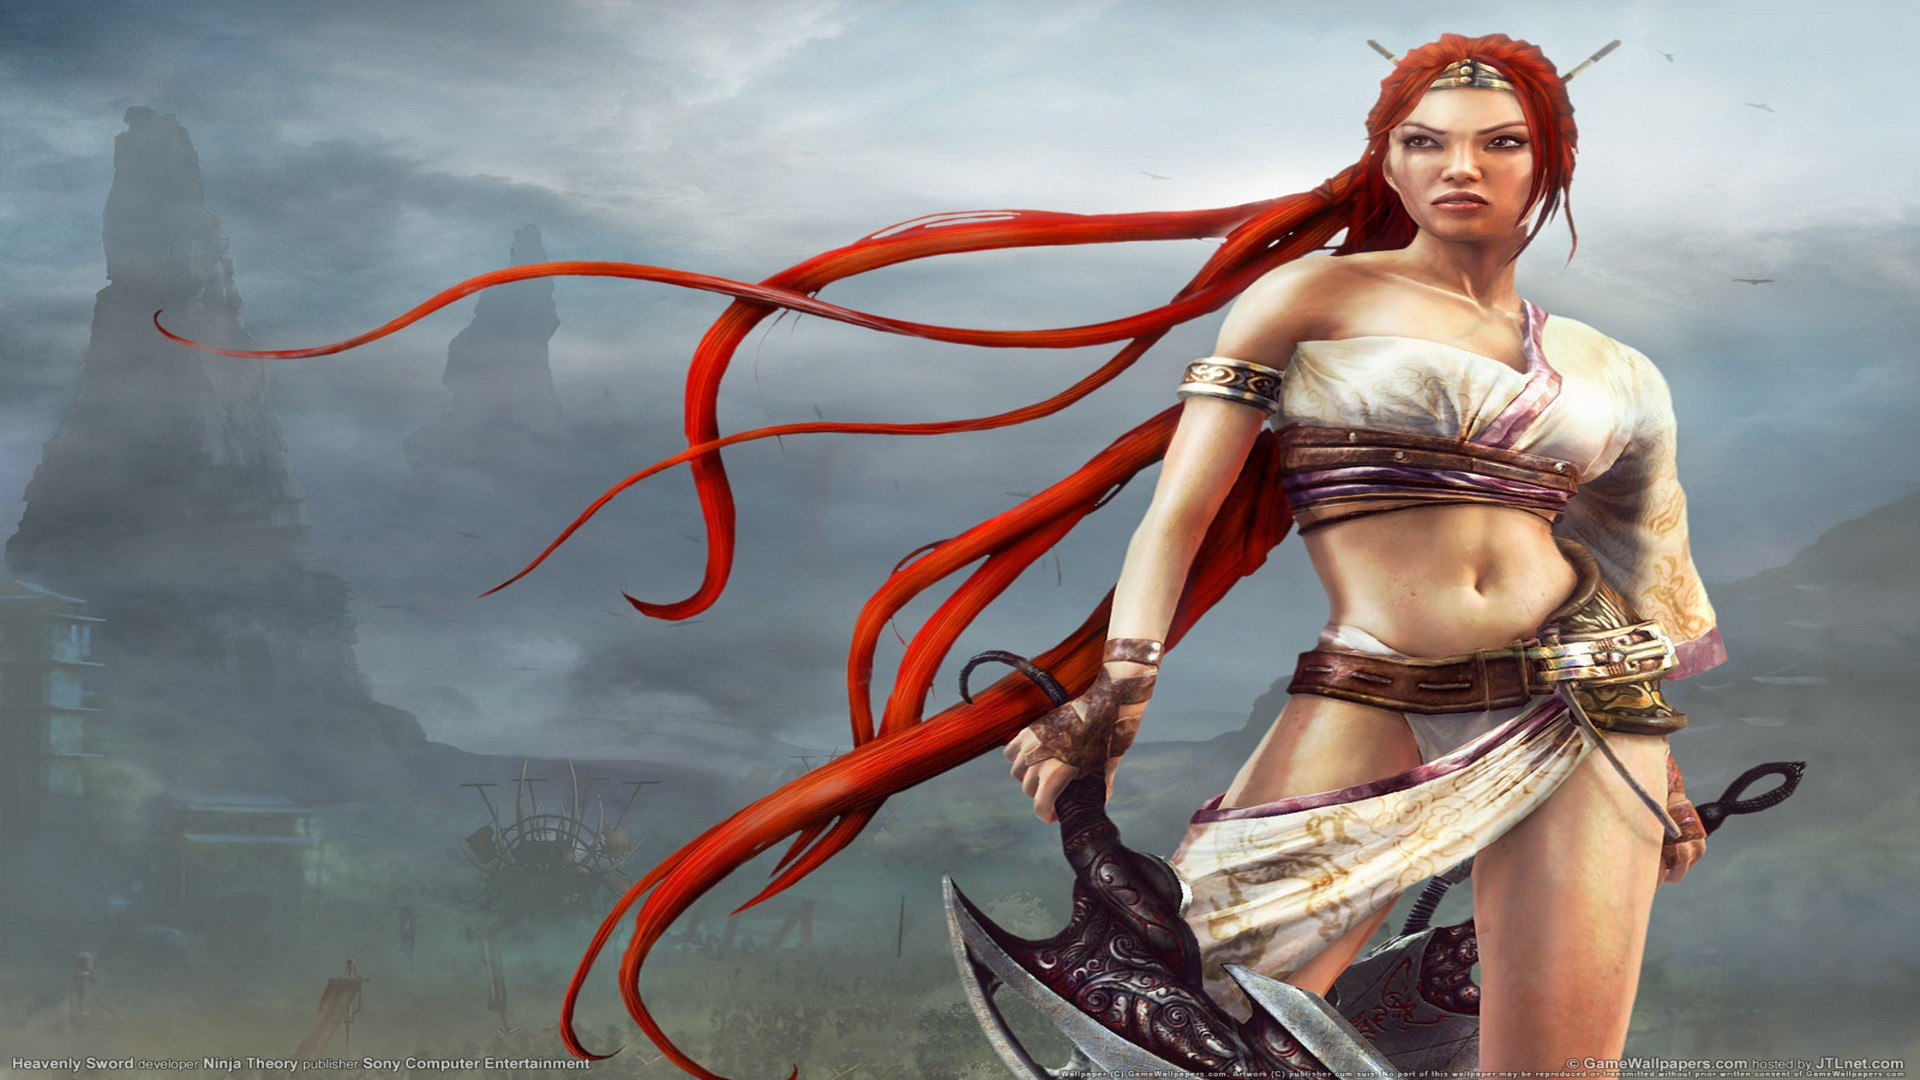 Heavenly Sword - Hot Nariko Wallpapers